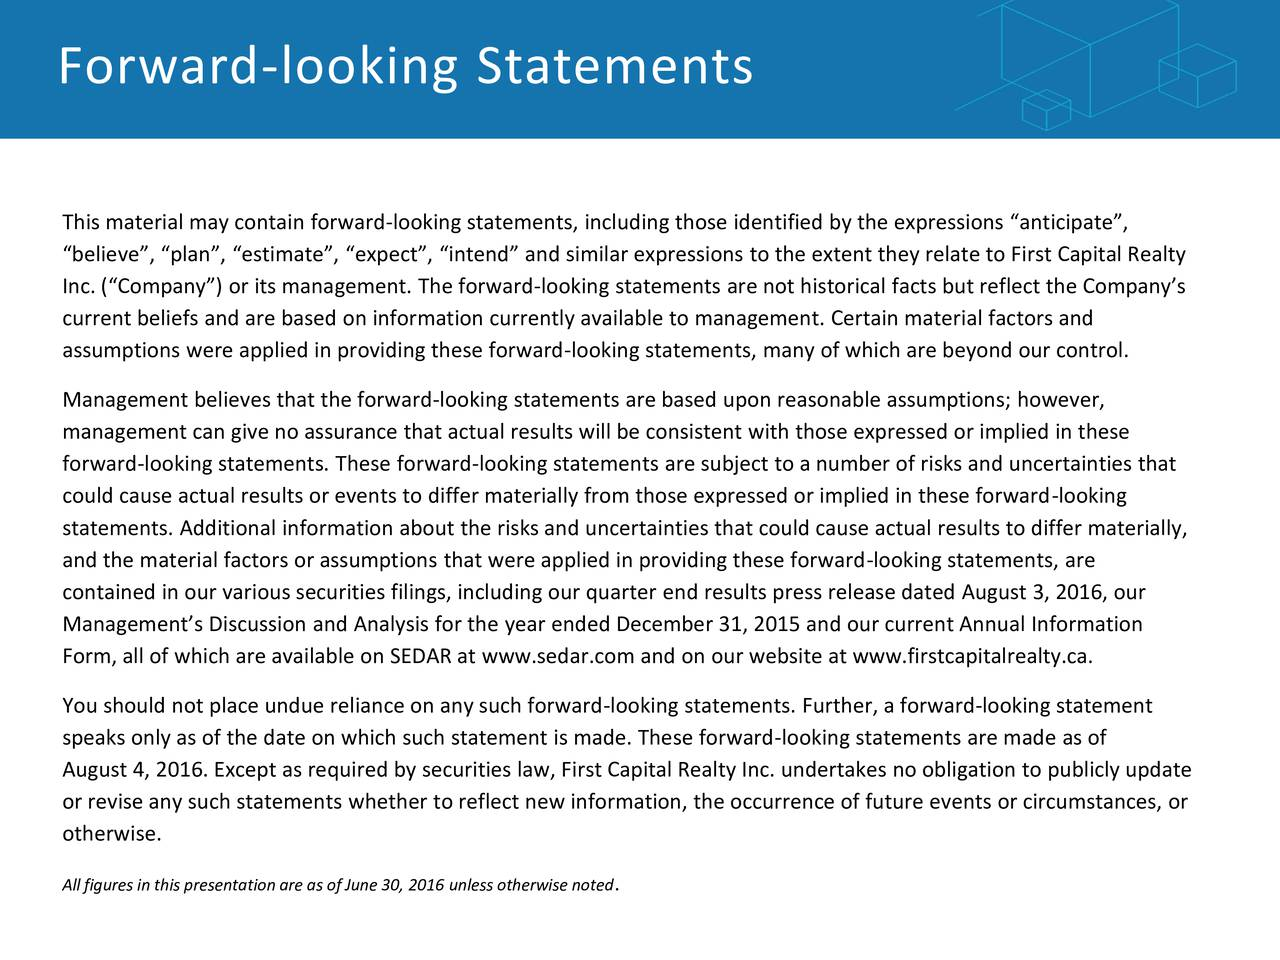 This material may contain forward-looking statements, including those identified by the expressions anticipate, believe, plan, estimate, expect, intend and similar expressions to the extent they relate to First Capital Realty Inc. (Company) or its management. The forward-looking statements are not historical facts but reflect the Companys current beliefs and are based on information currently available to management. Certain material factors and assumptions were applied in providing these forward-looking statements, many of which are beyond our control. Management believes that the forward-looking statements are based upon reasonable assumptions; however, management can give no assurance that actual results will be consistent with those expressed or implied in these forward-looking statements. These forward-looking statements are subject to a number of risks and uncertainties that could cause actual results or events to differ materially from those expressed or implied in these forward-looking statements. Additional information about the risks and uncertainties that could cause actual results to differ materially, and the material factors or assumptions that were applied in providing these forward-looking statements, are contained in our various securities filings, including our quarter end results press release dated August 3, 2016, our Managements Discussion and Analysis for the year ended December 31, 2015 and our current Annual Information Form, all of which are available on SEDAR at www.sedar.com and on our website at www.firstcapitalrealty.ca. You should not place undue reliance on any such forward-looking statements. Further, a forward-looking statement speaks only as of the date on which such statement is made. These forward-looking statements are made as of August 4, 2016. Except as required by securities law, First Capital Realty Inc. undertakes no obligation to publicly update or revise any such statements whether to reflect new information, the occurrence of future events or circumstances, or otherwise. All figures in this presentation are as of June 30, 2016 .nless otherwise noted